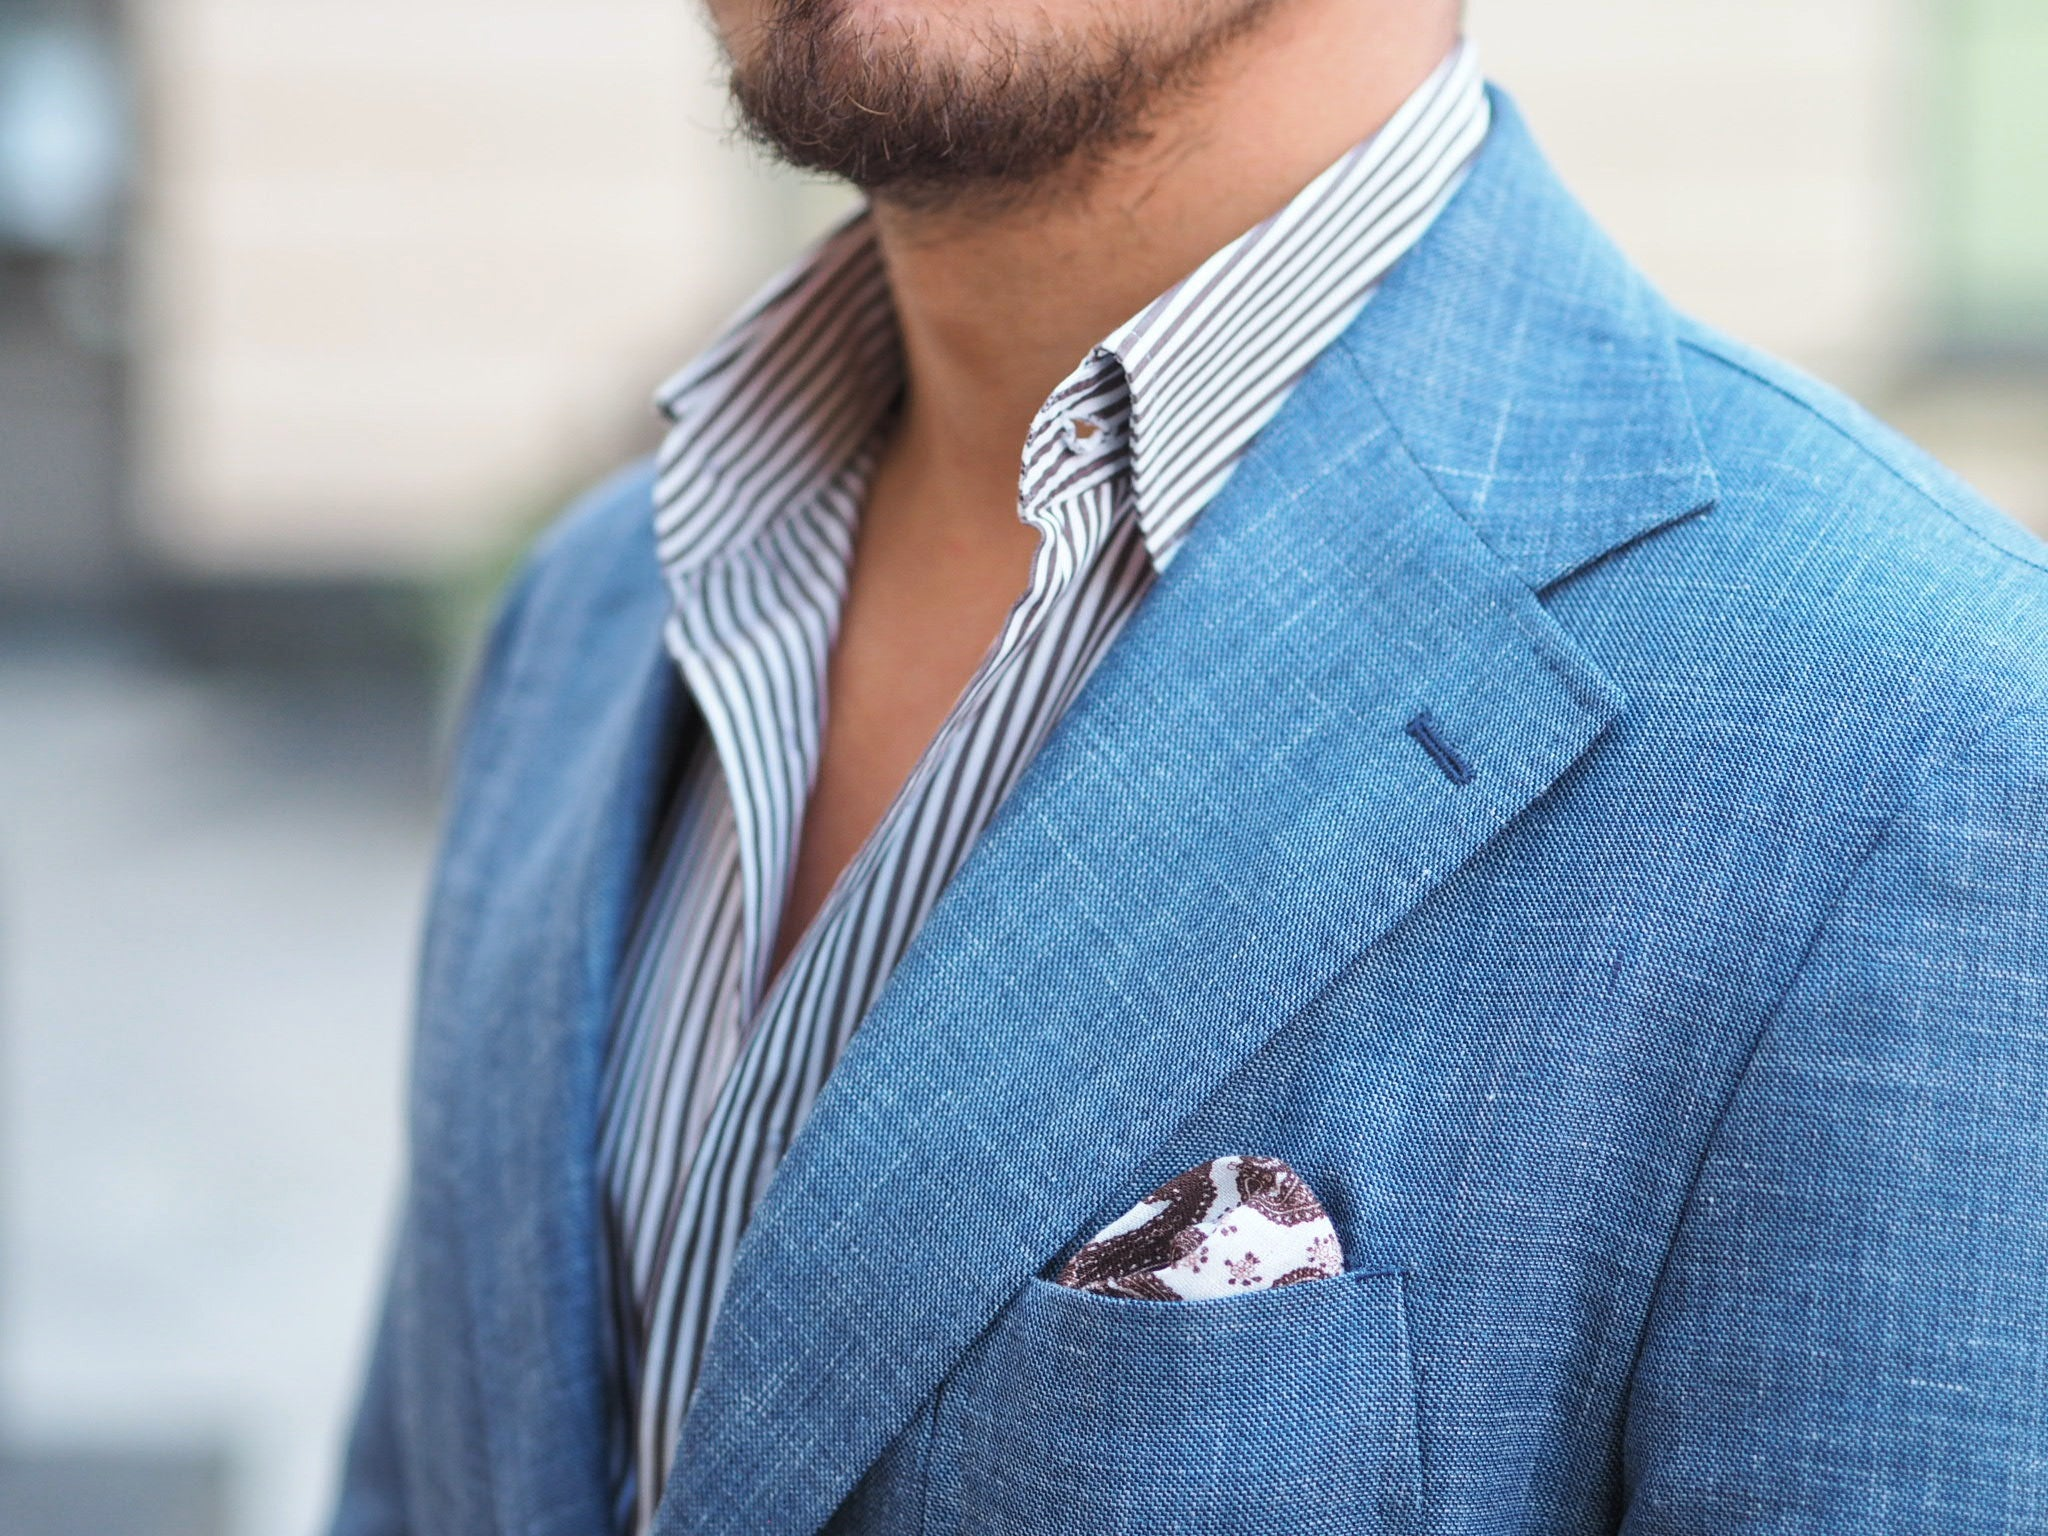 Light blue suit for summer - pocket square details